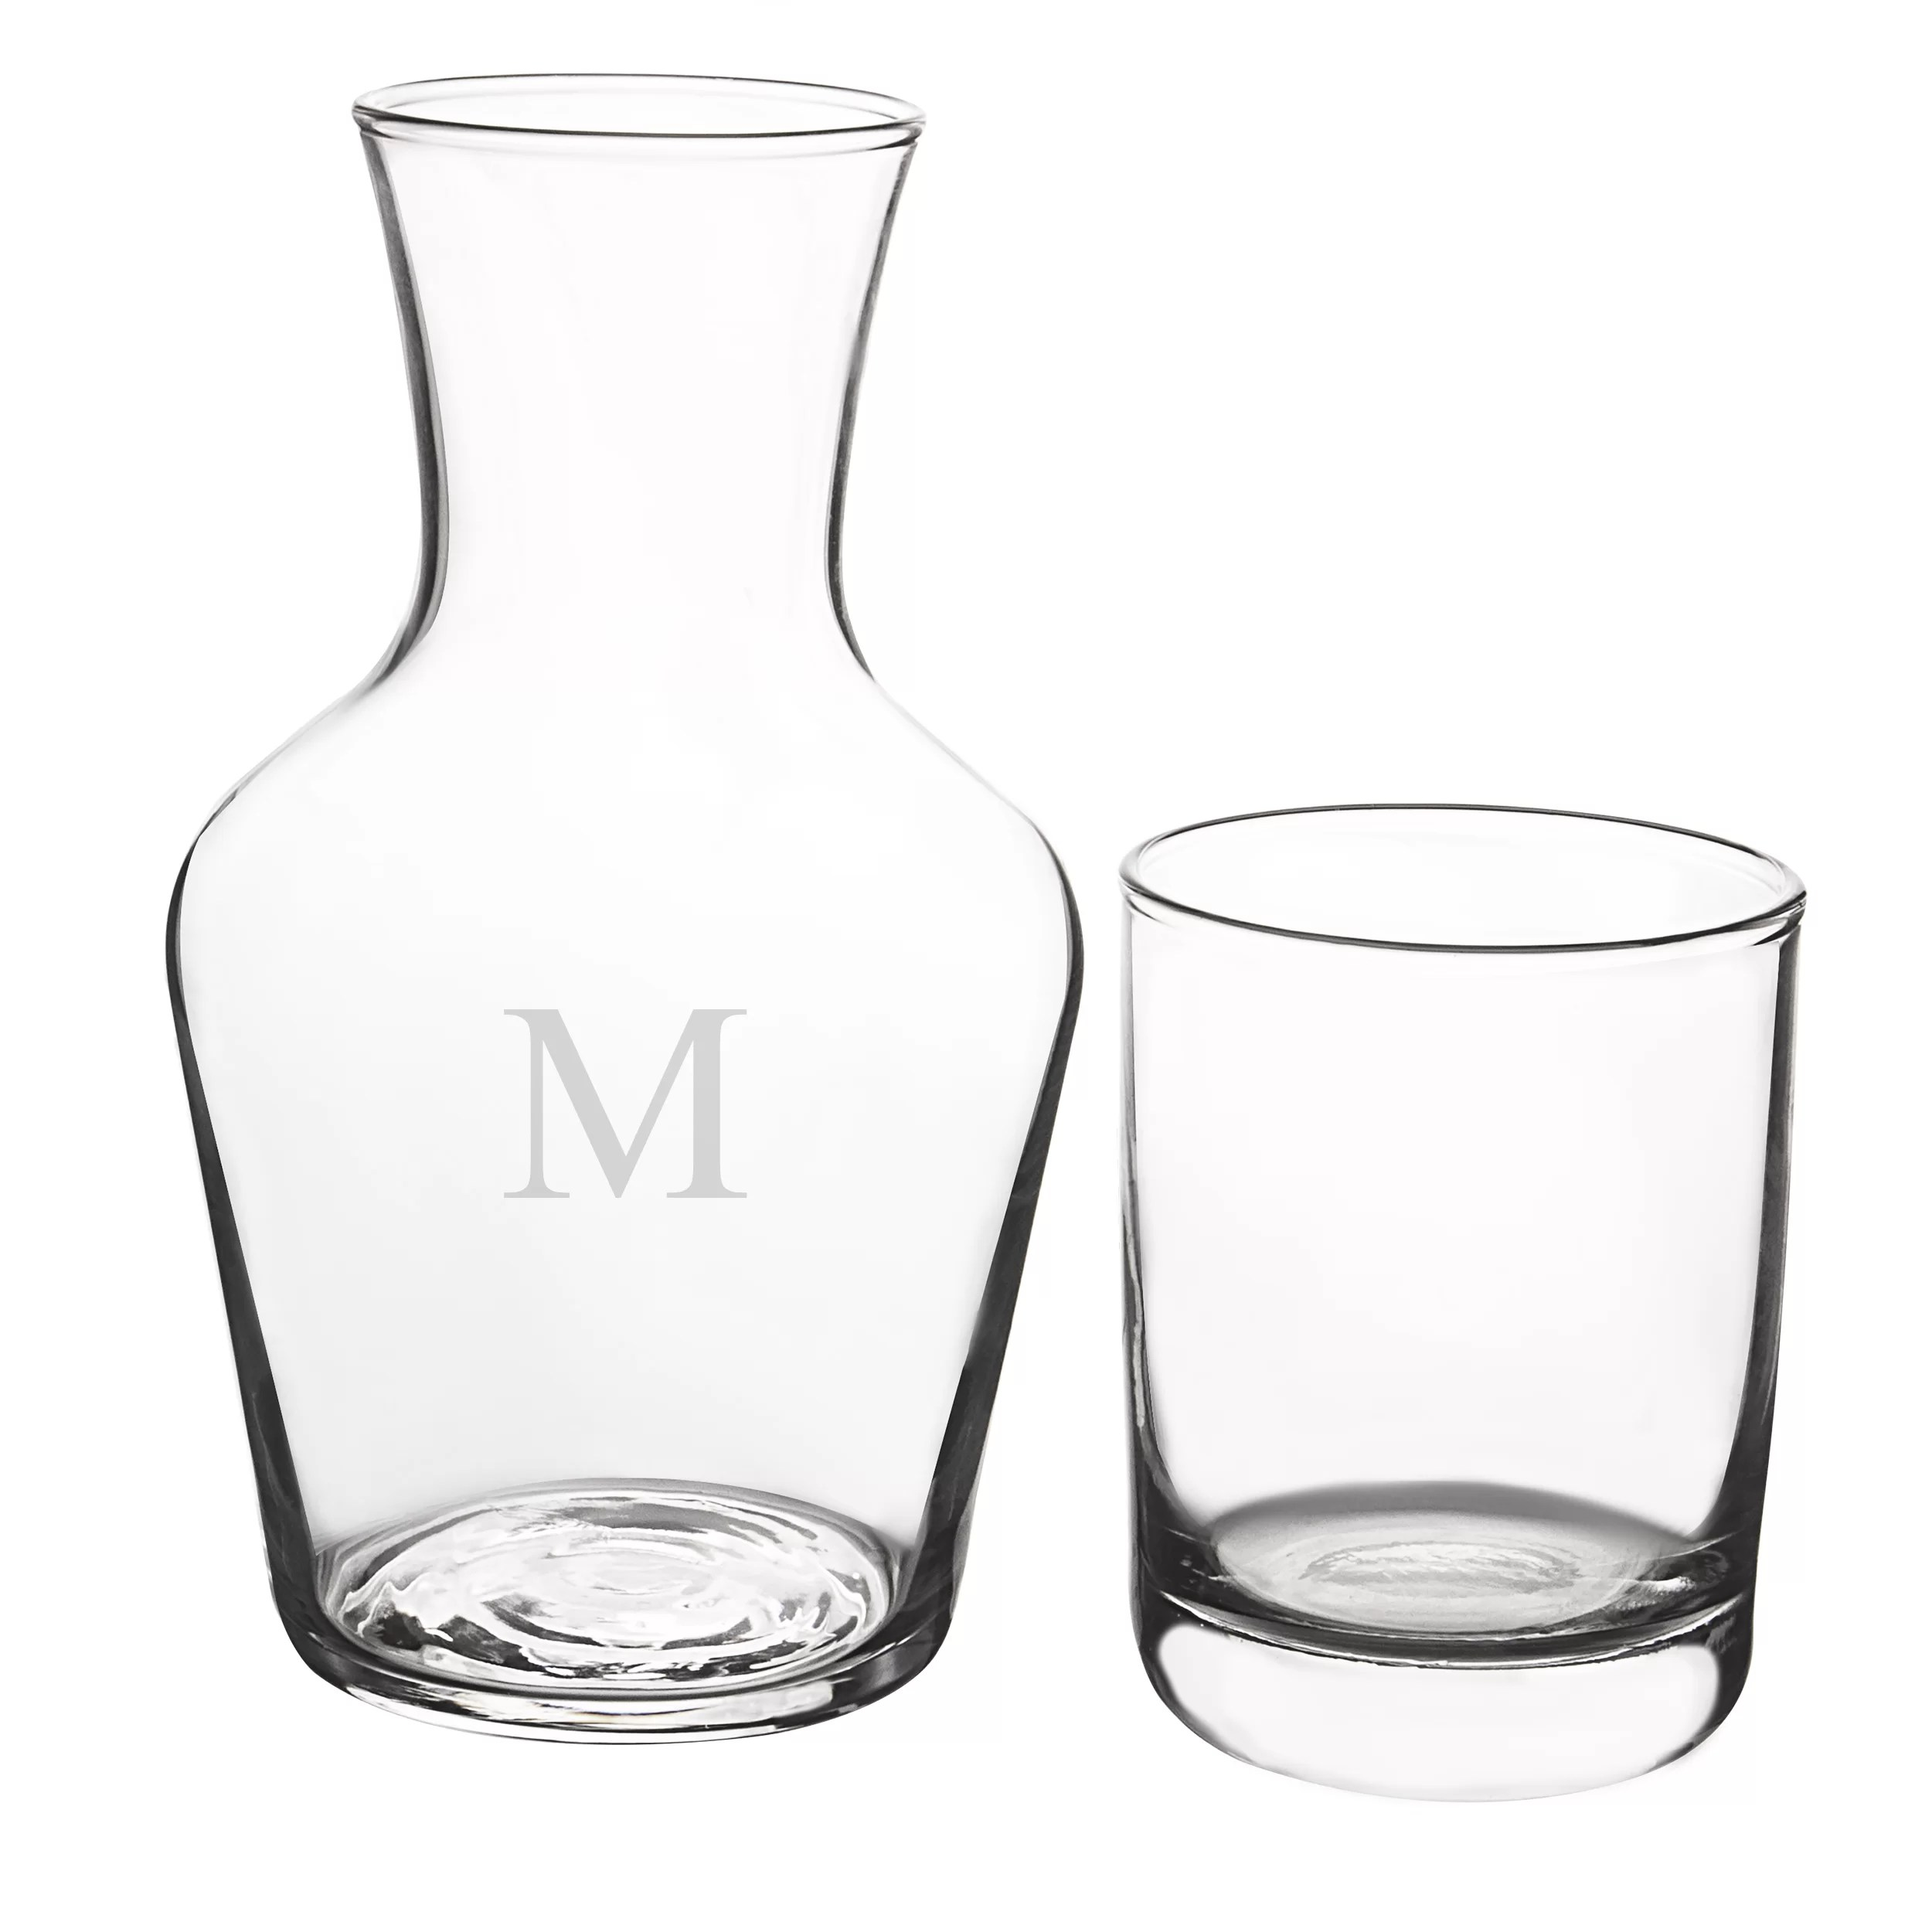 Bedside Water Carafe And Glass Cathys Concepts 2 Piece Carafe Set And Reviews Wayfair